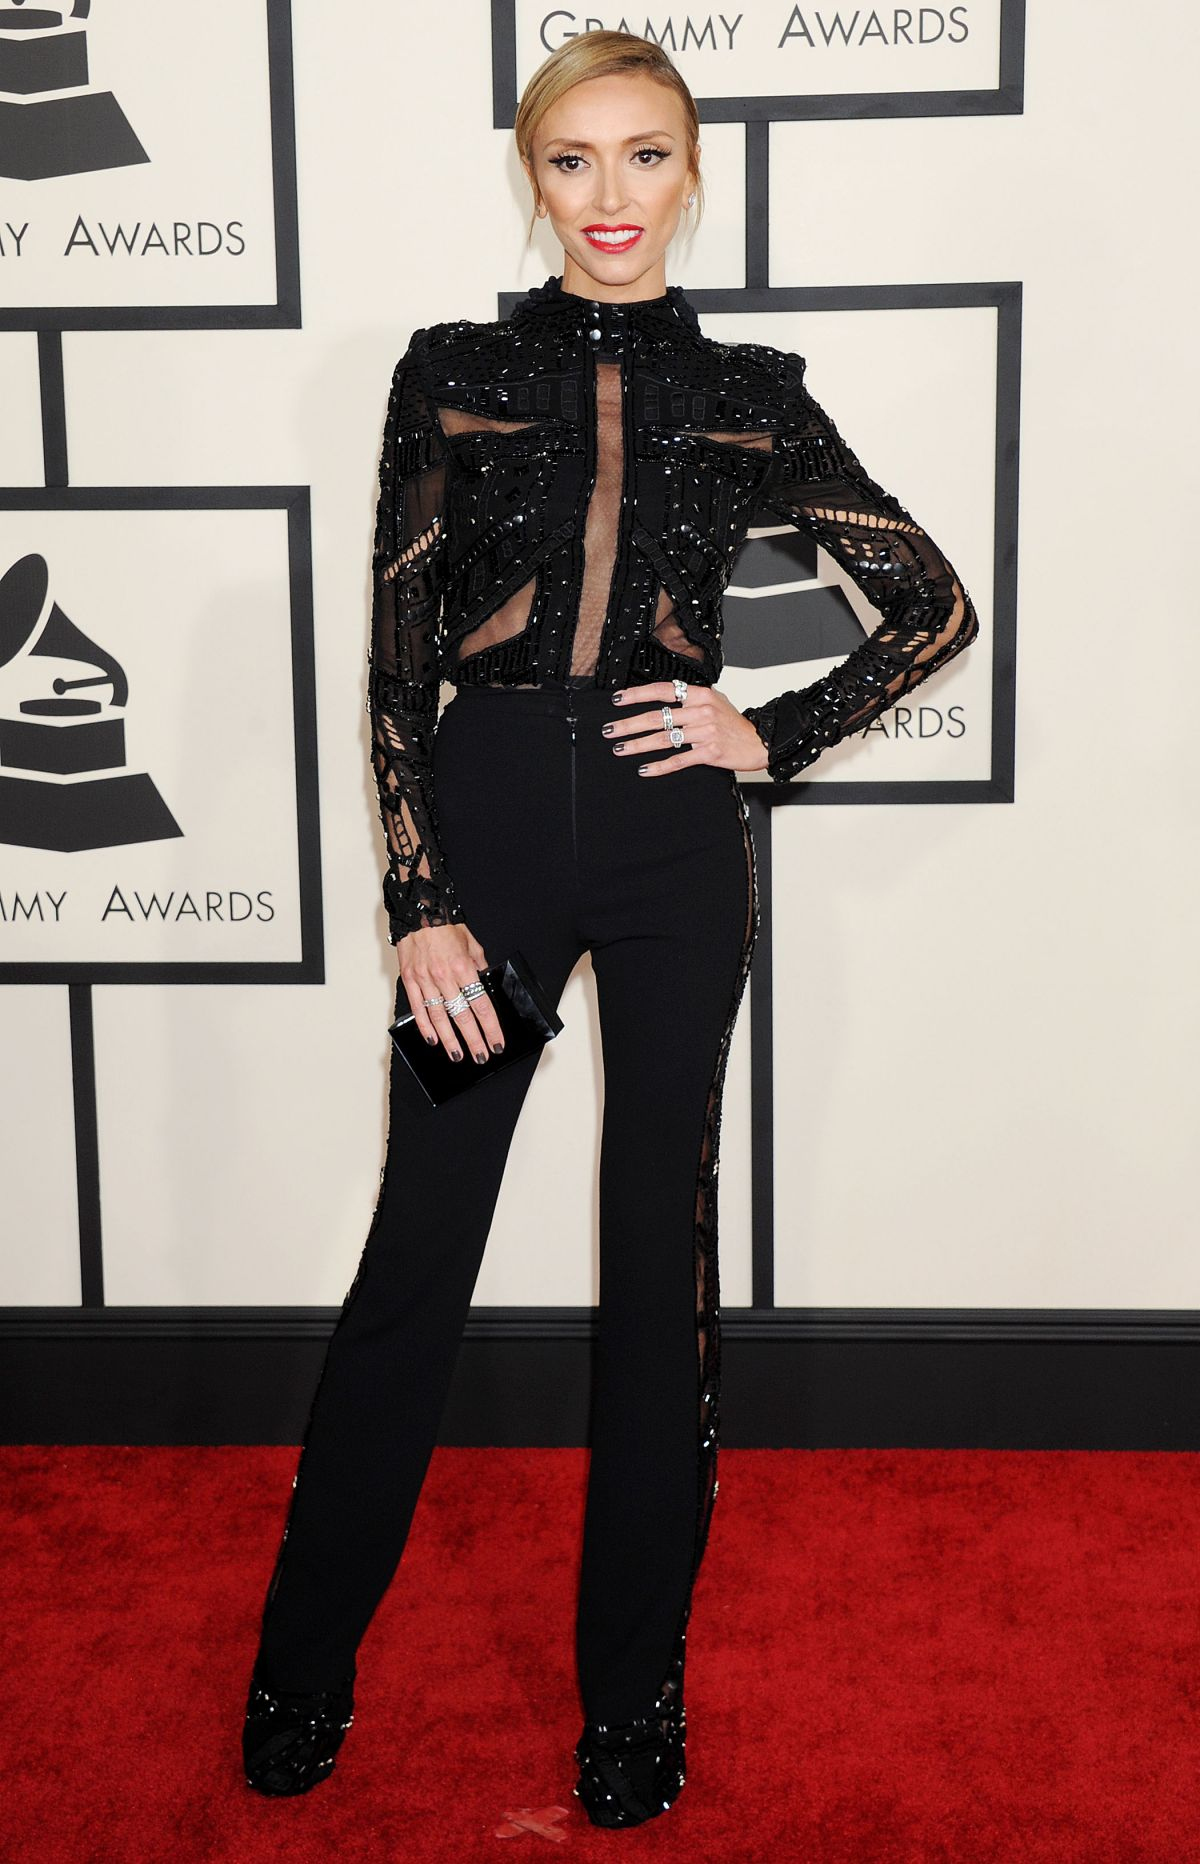 GIULIANA RANCIC at 2015 Grammy Awards in Los Angeles